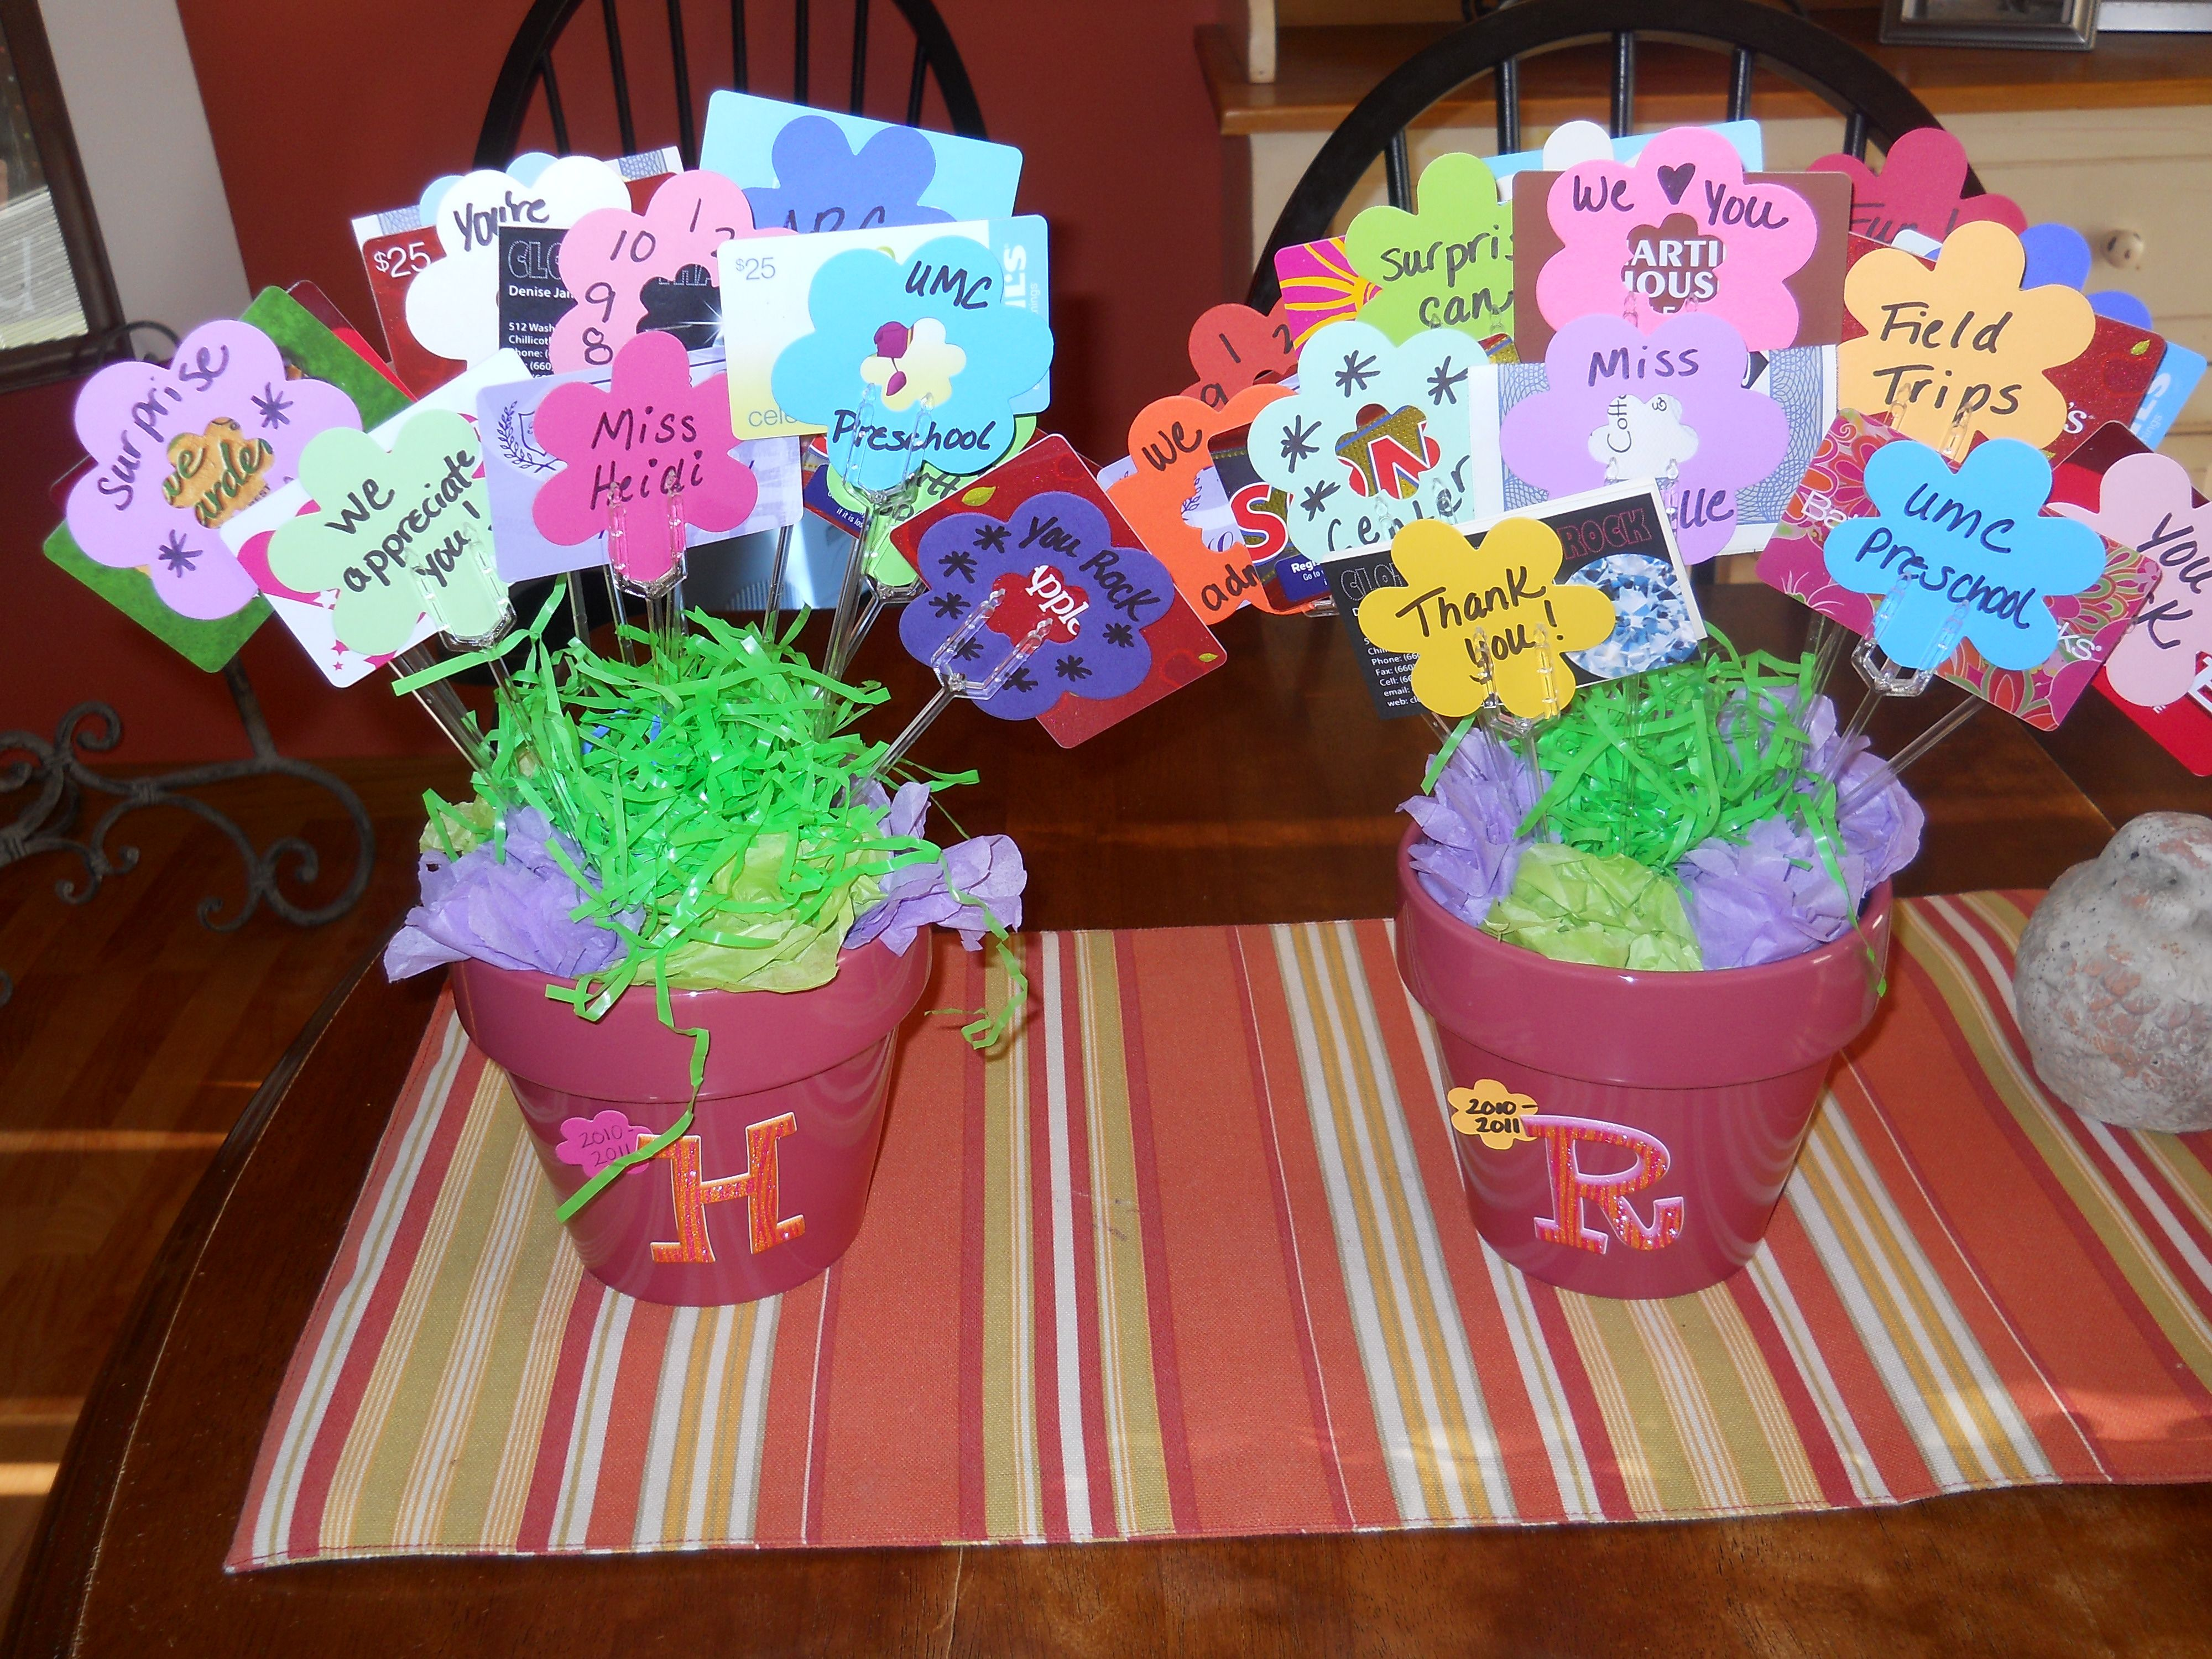 Gift cardget well idea since flowers arent allowed samantha gift cardget well idea since flowers arent allowed samantha mcgregor negle Choice Image